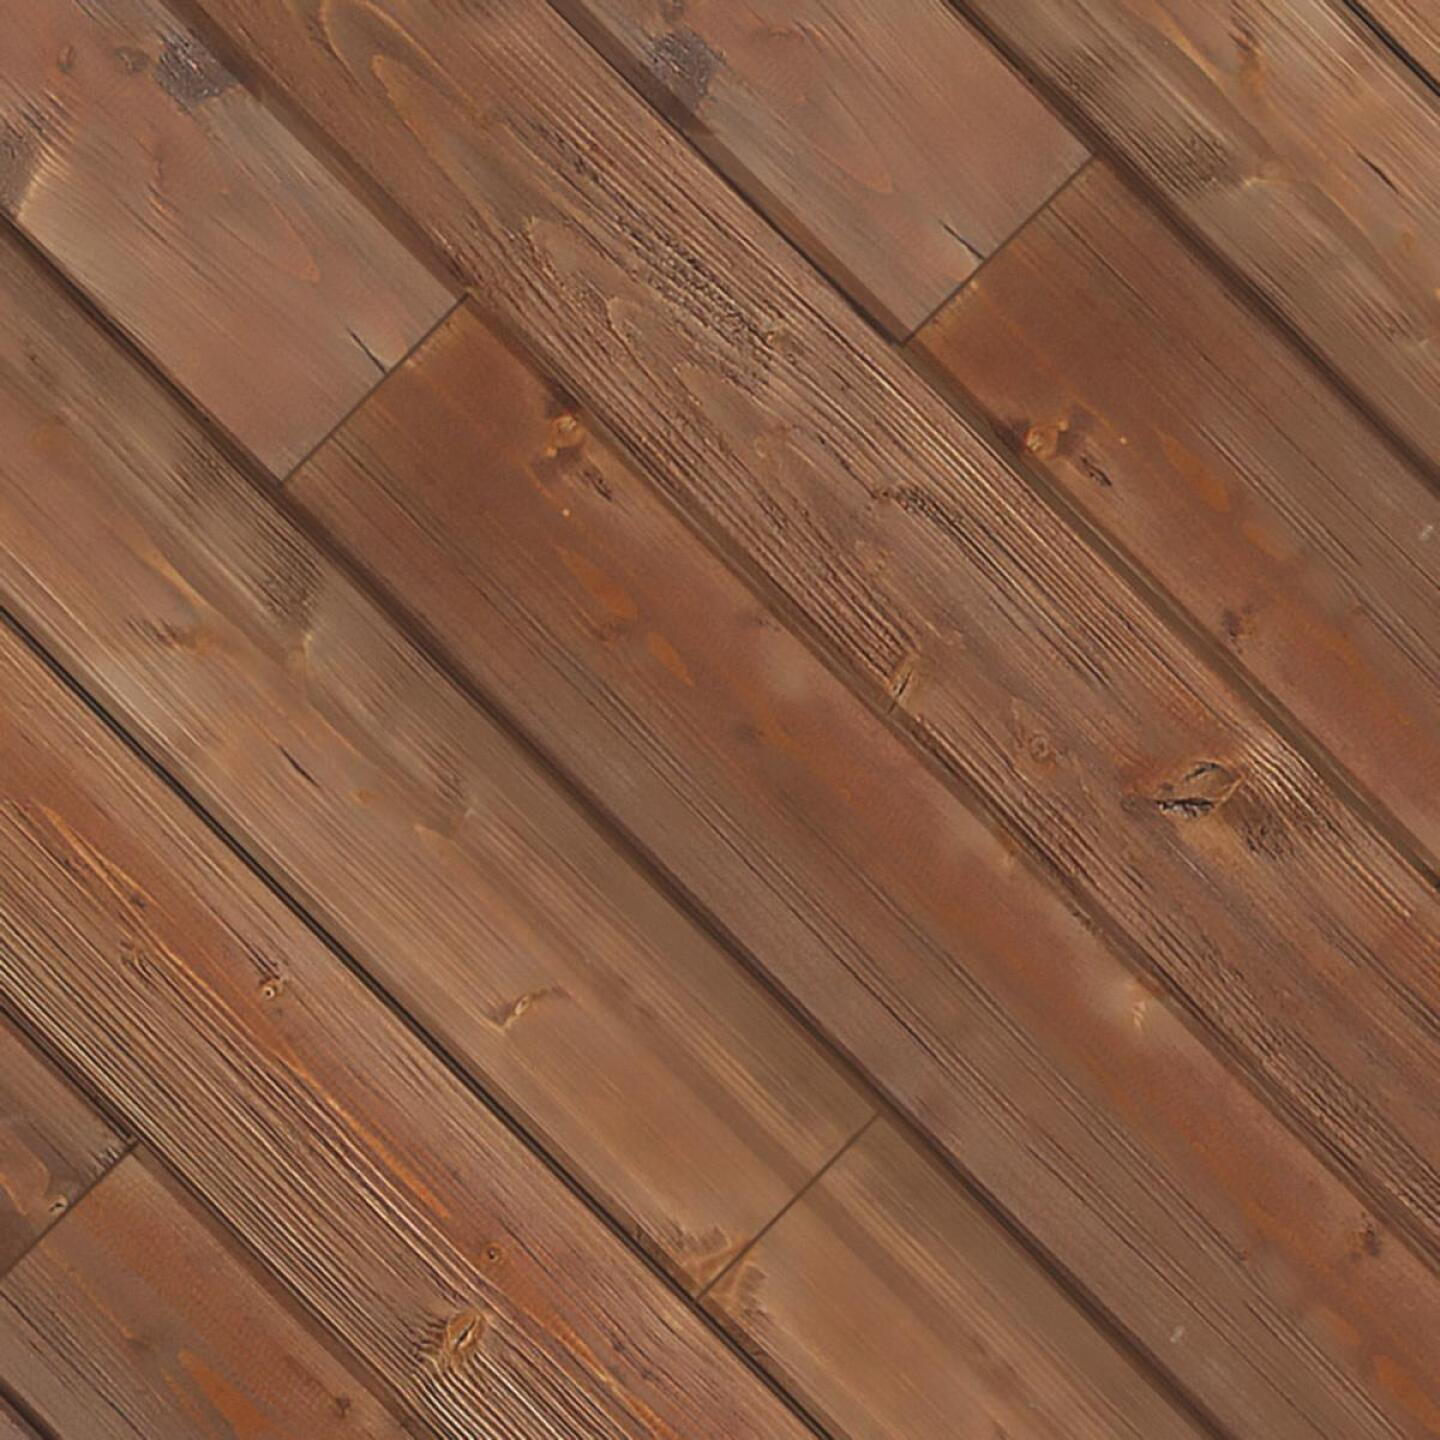 Global Product Sourcing 3-1/2 In. W. x 1/4 In. Thick Solid Wood Brown Reclaimed Wood Wall Plank Image 1